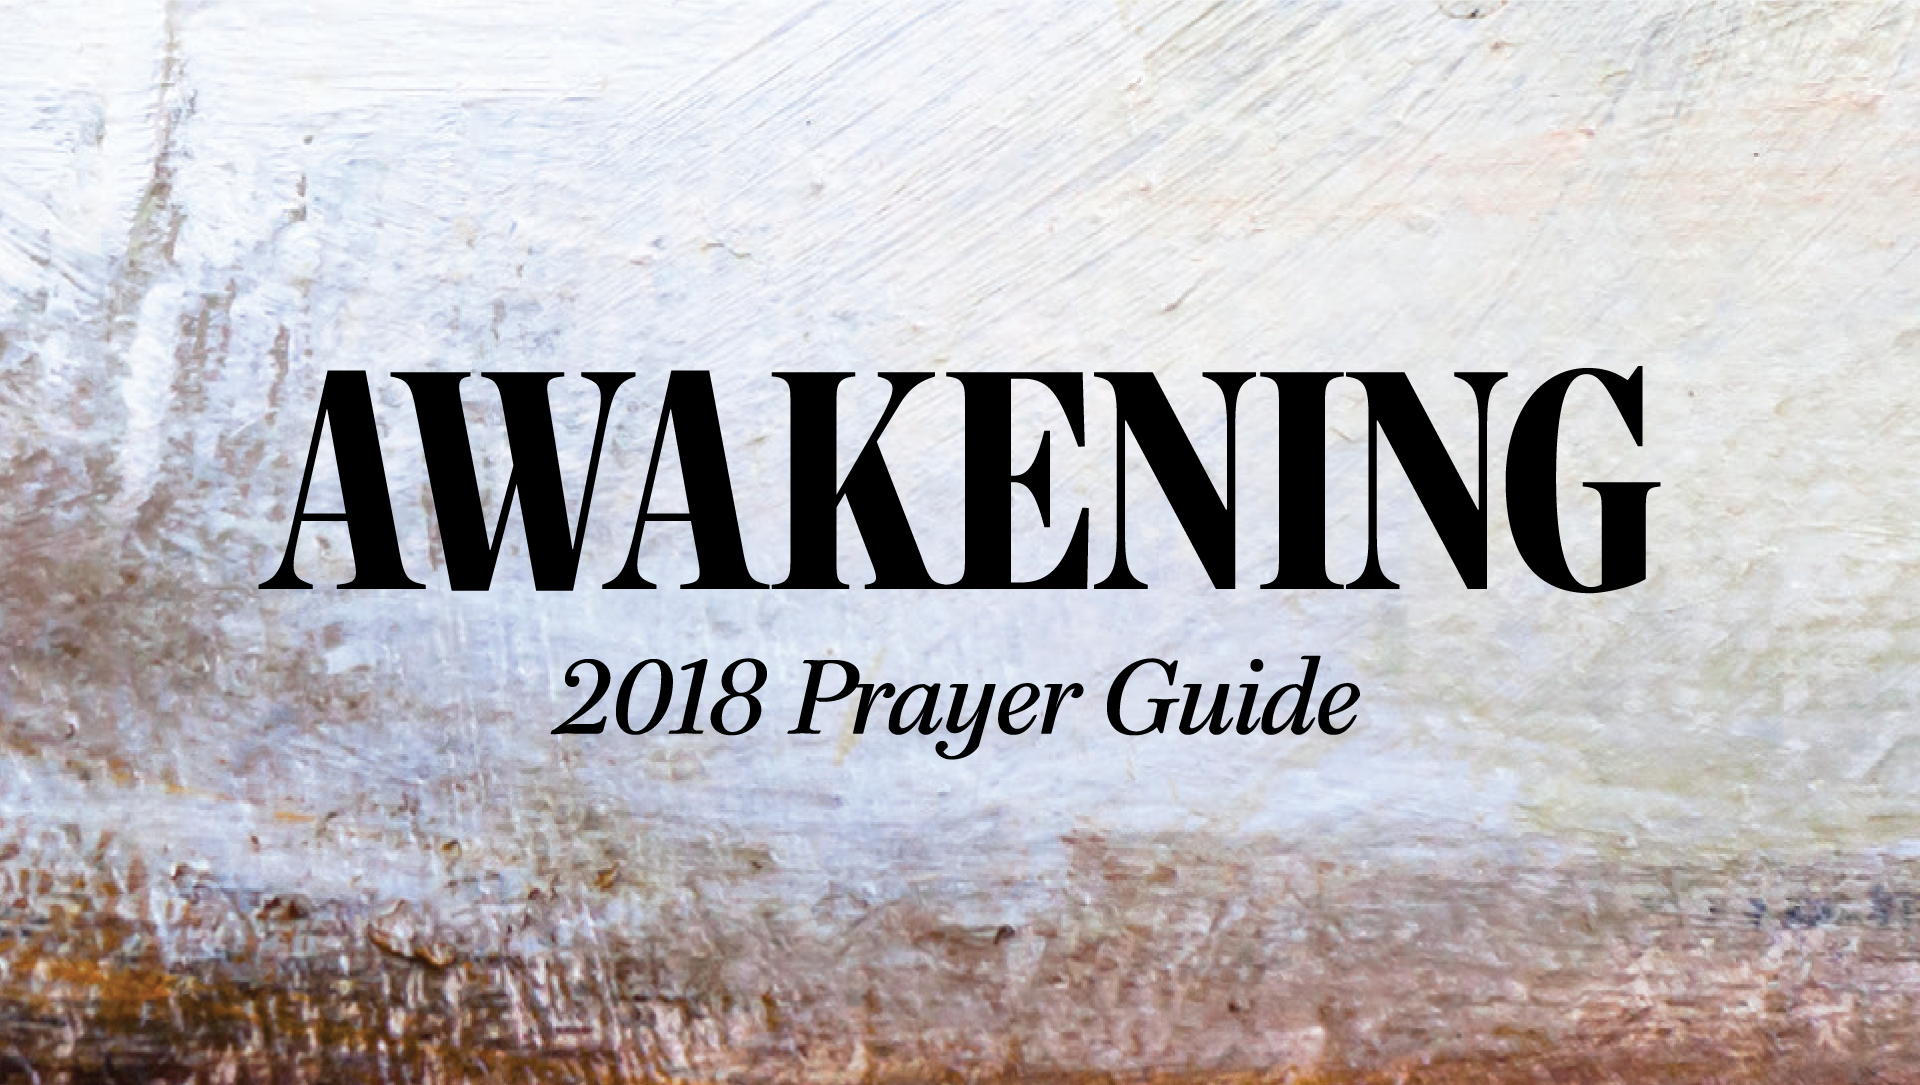 Pray for Awakening    January 30, 2018